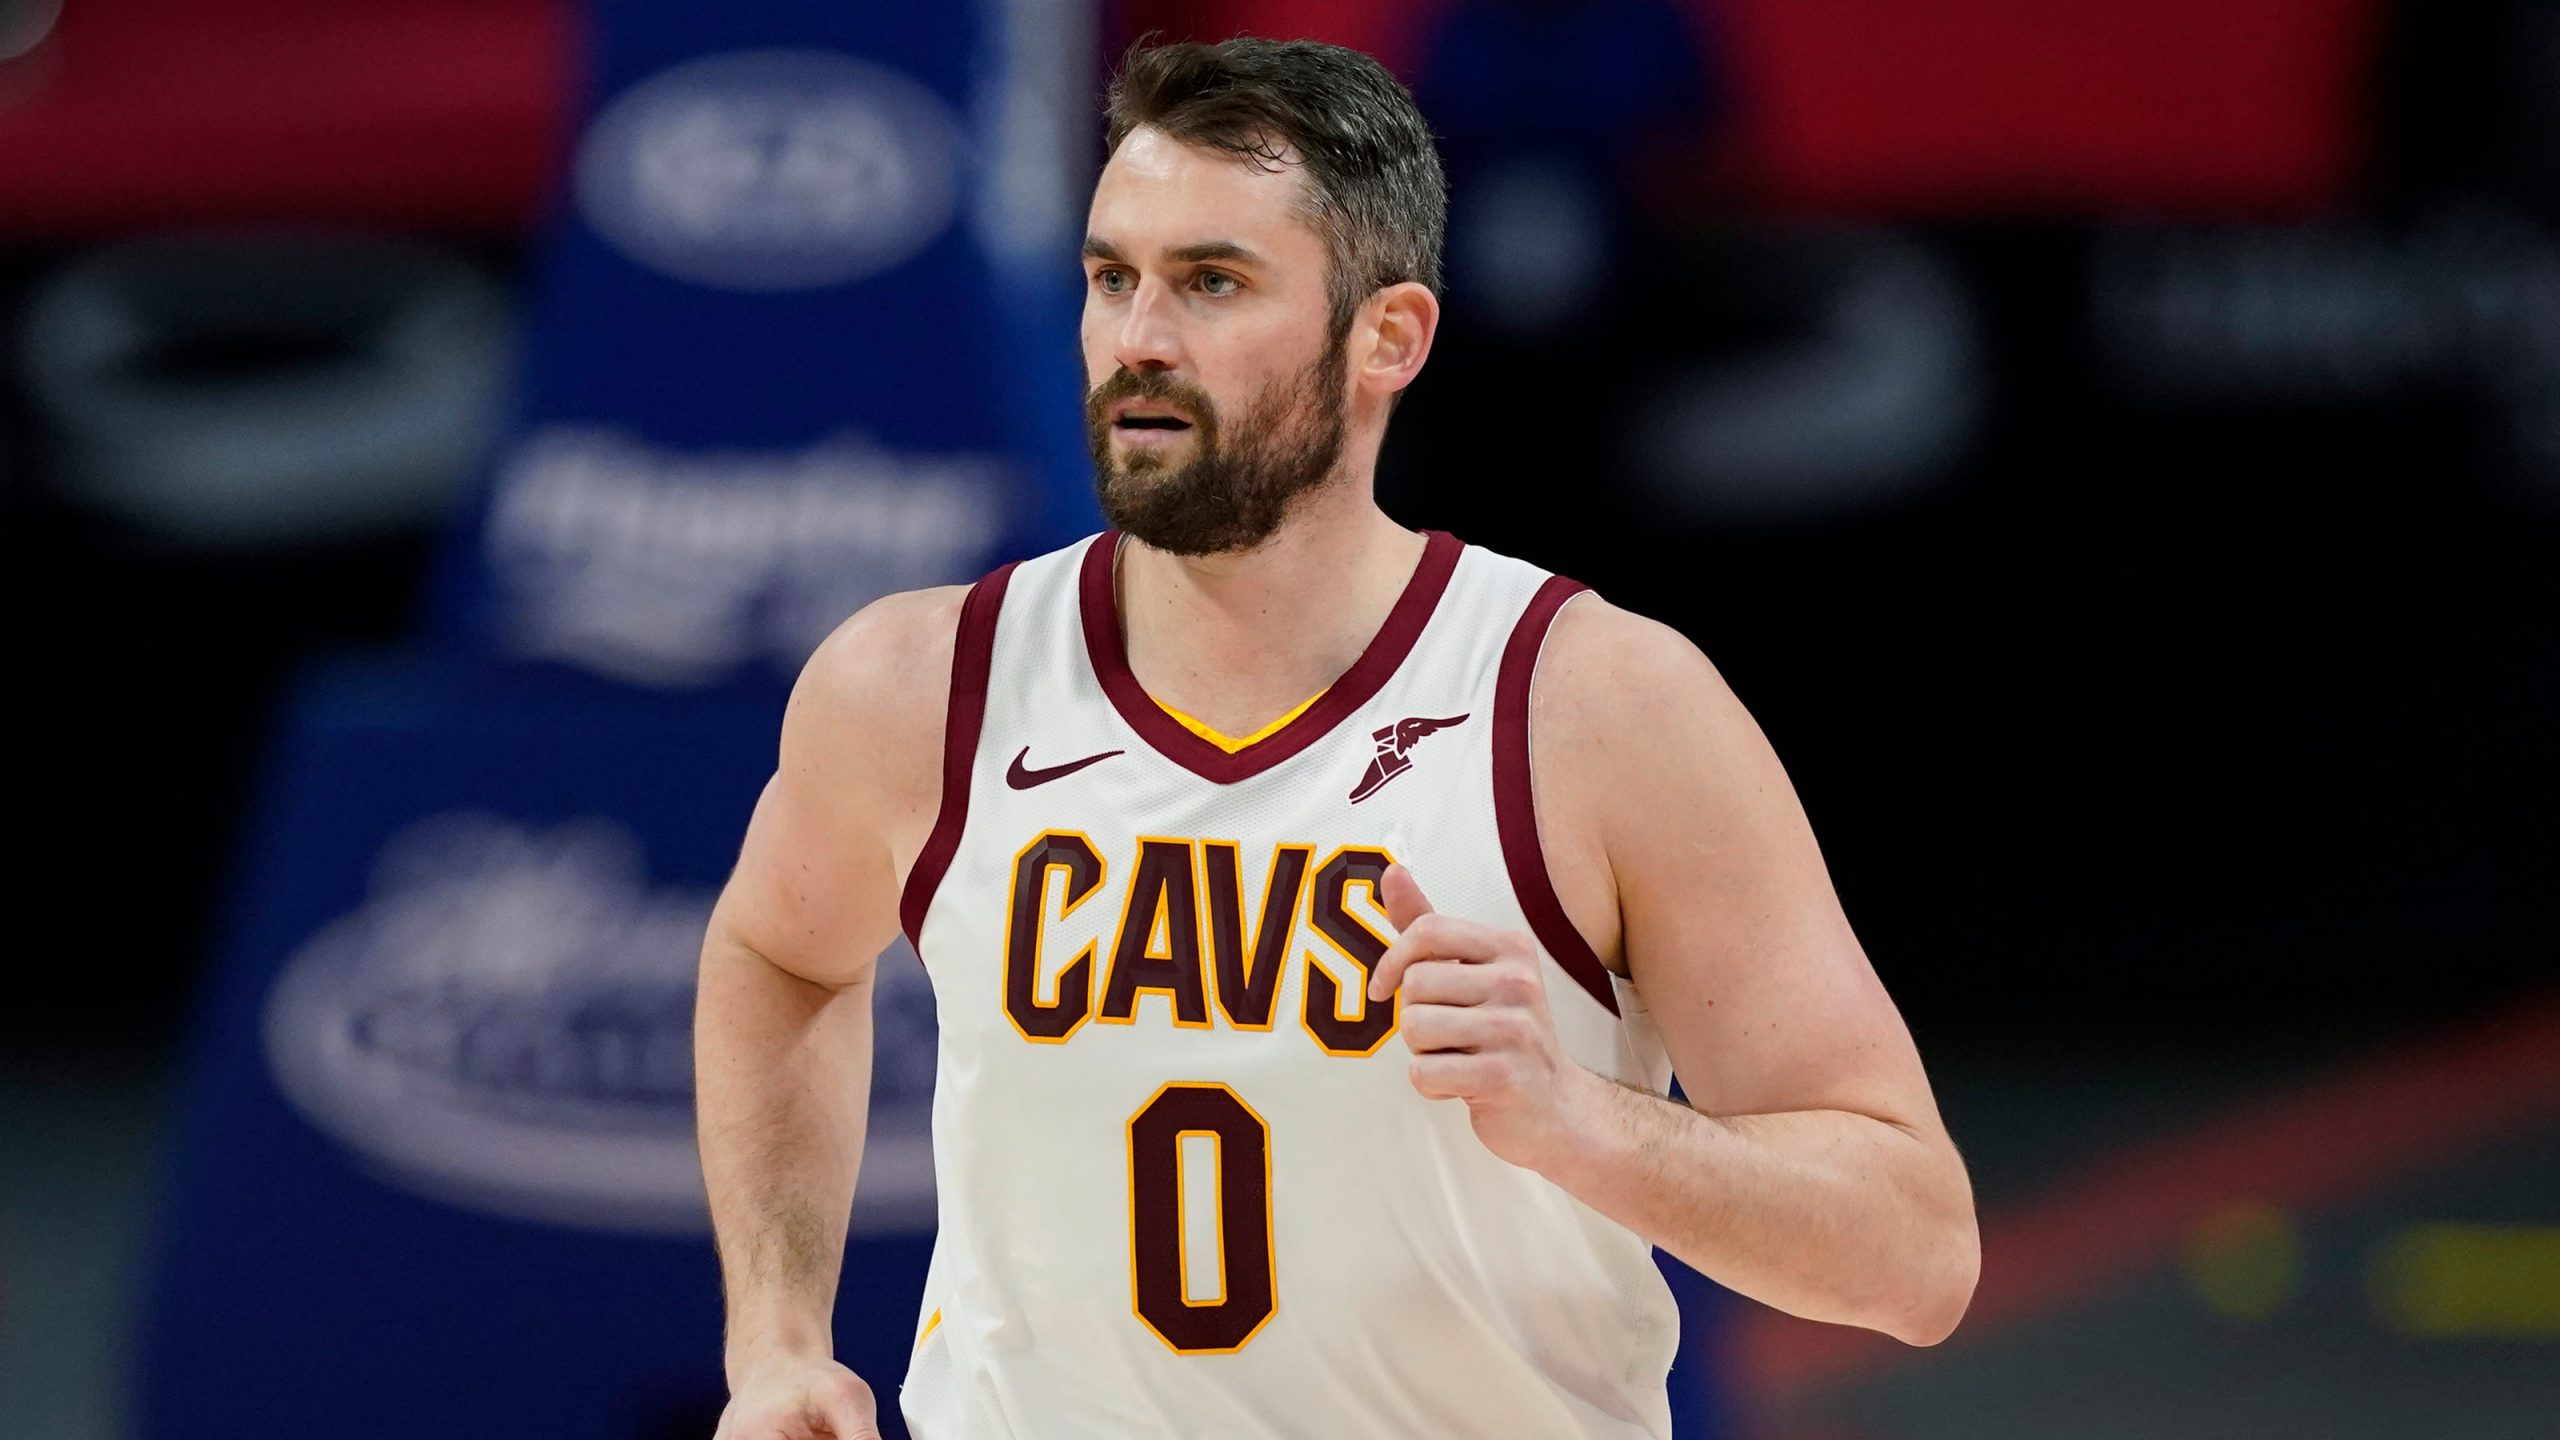 Kevin Love To The Lakers: The Possibility